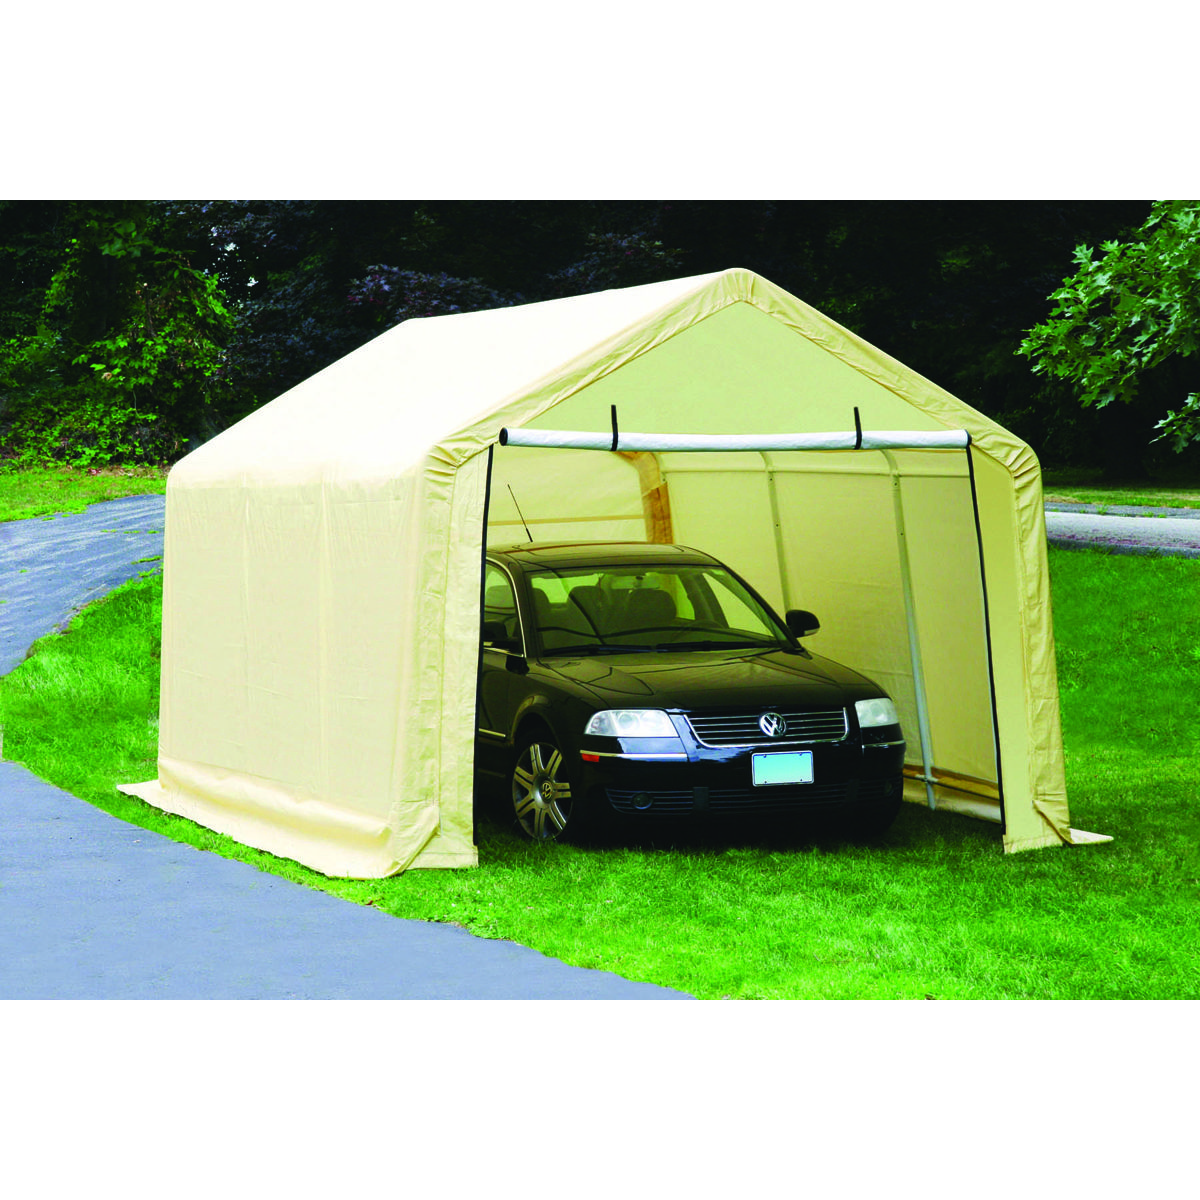 10 ft. x 17 ft. Portable Garage | Portable garage ...